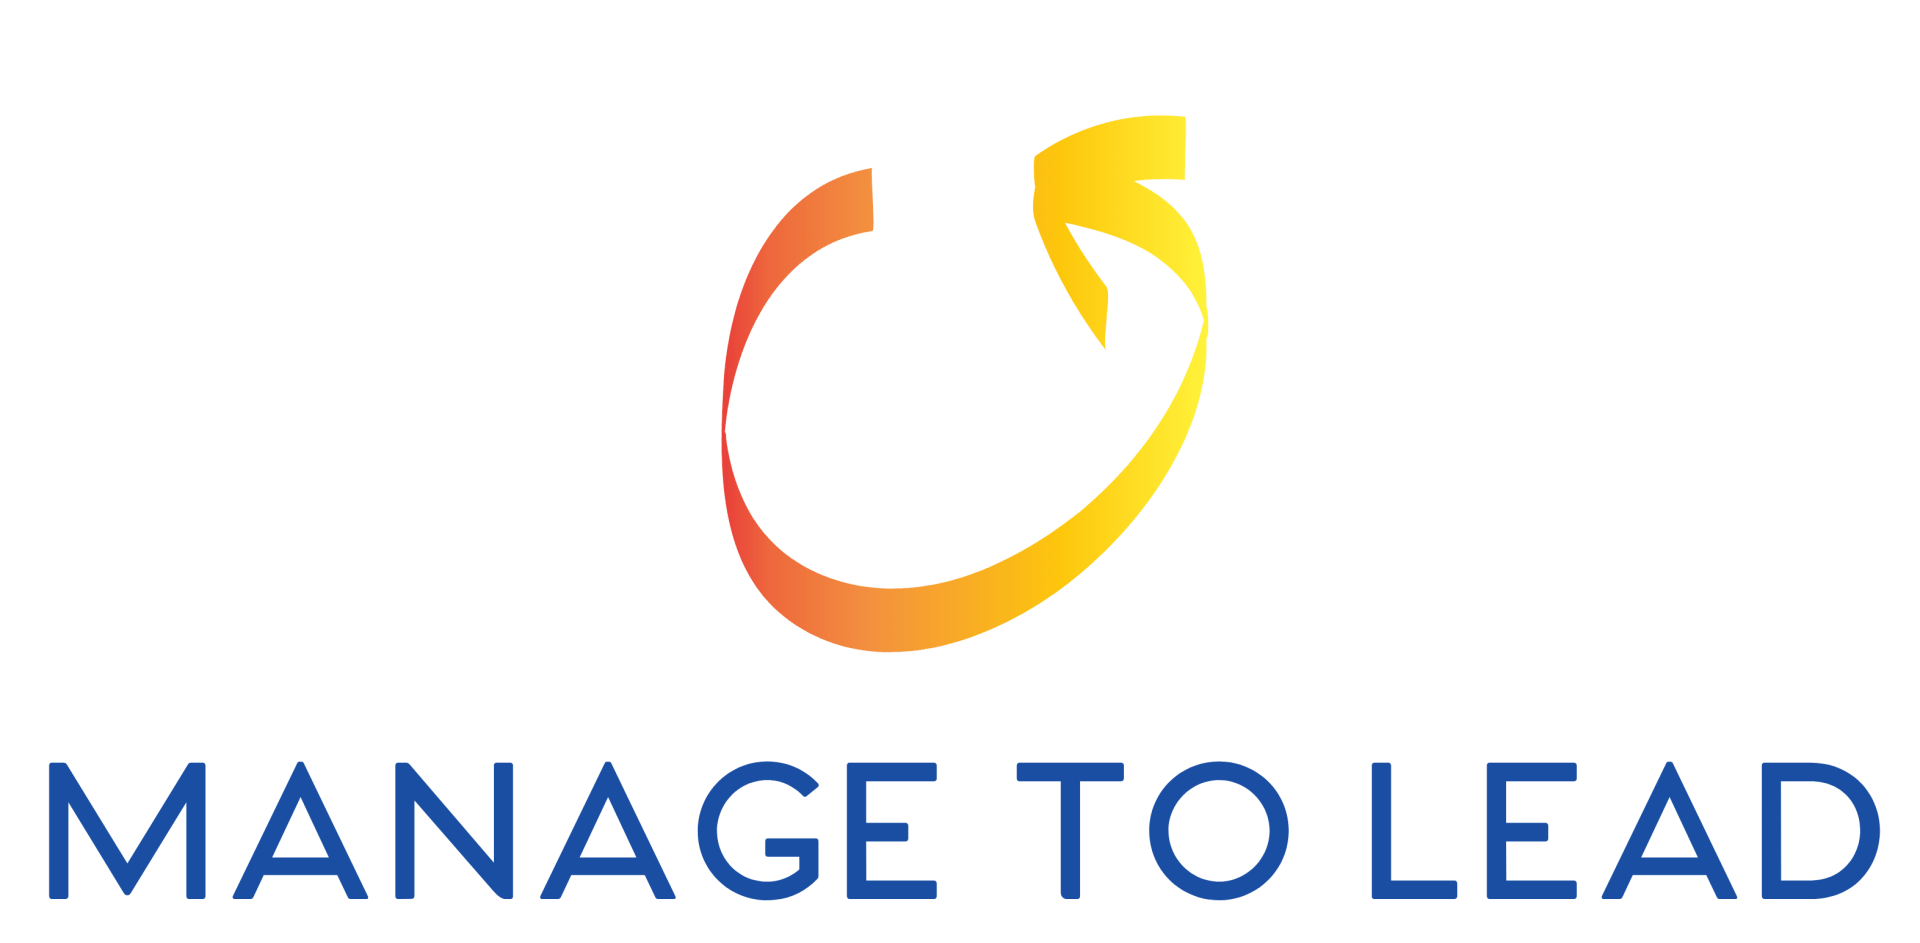 lead and manage Leading, managing and motivating knowledge workers call for an understanding  of what drives knowledge workers, individually and as.